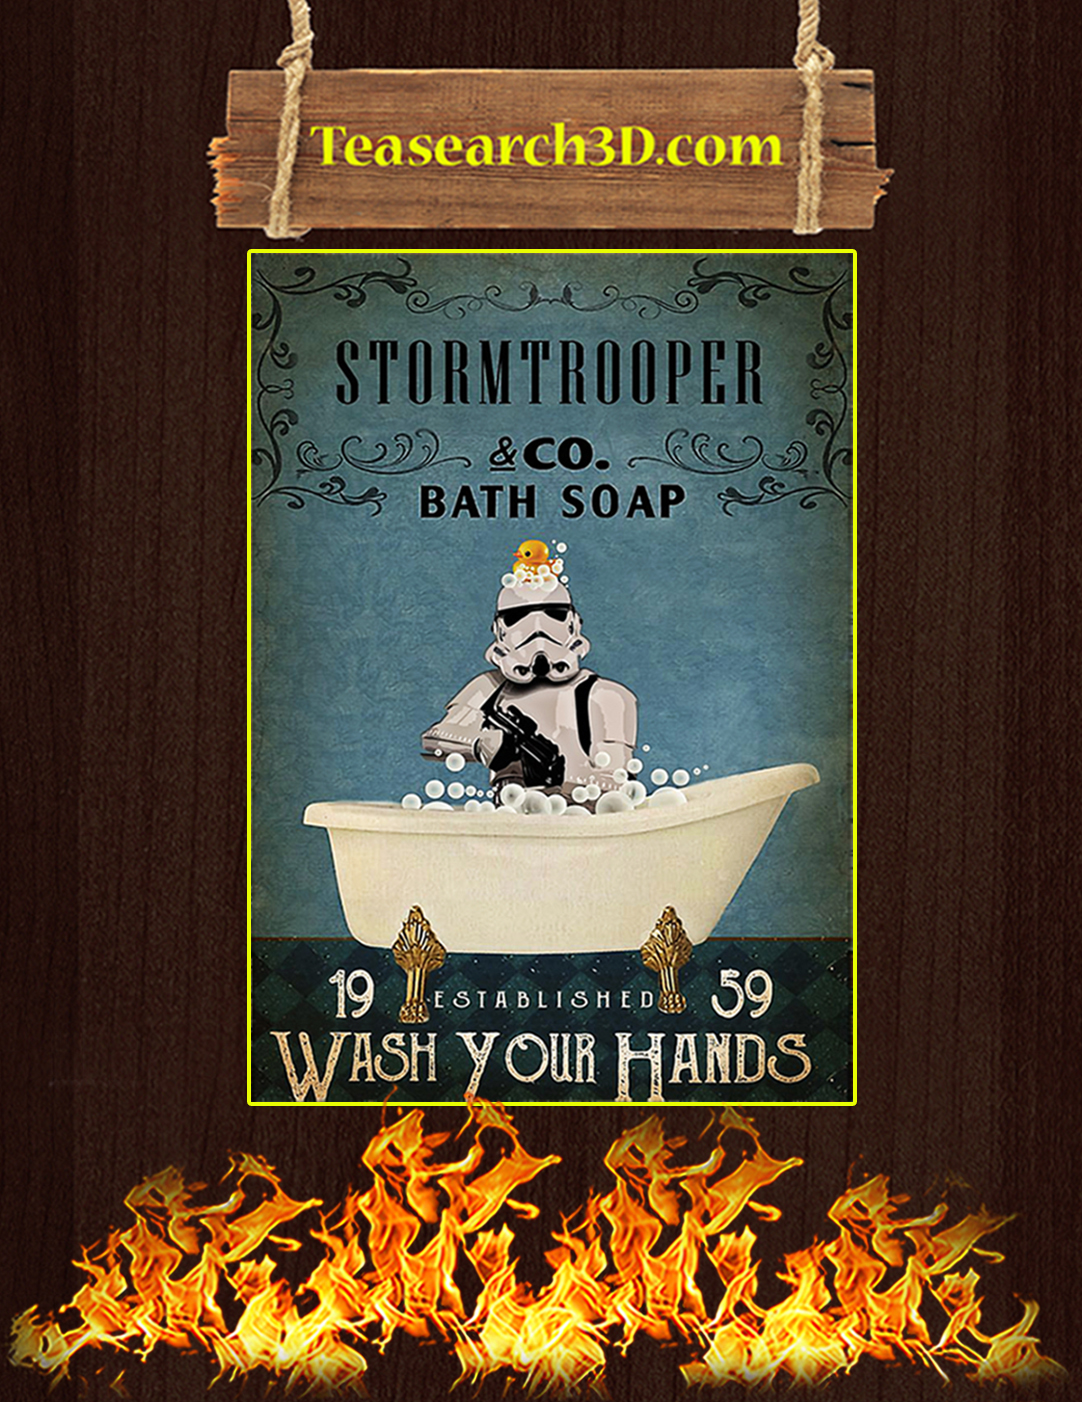 Stormtrooper co bath soap wash your hands poster A2